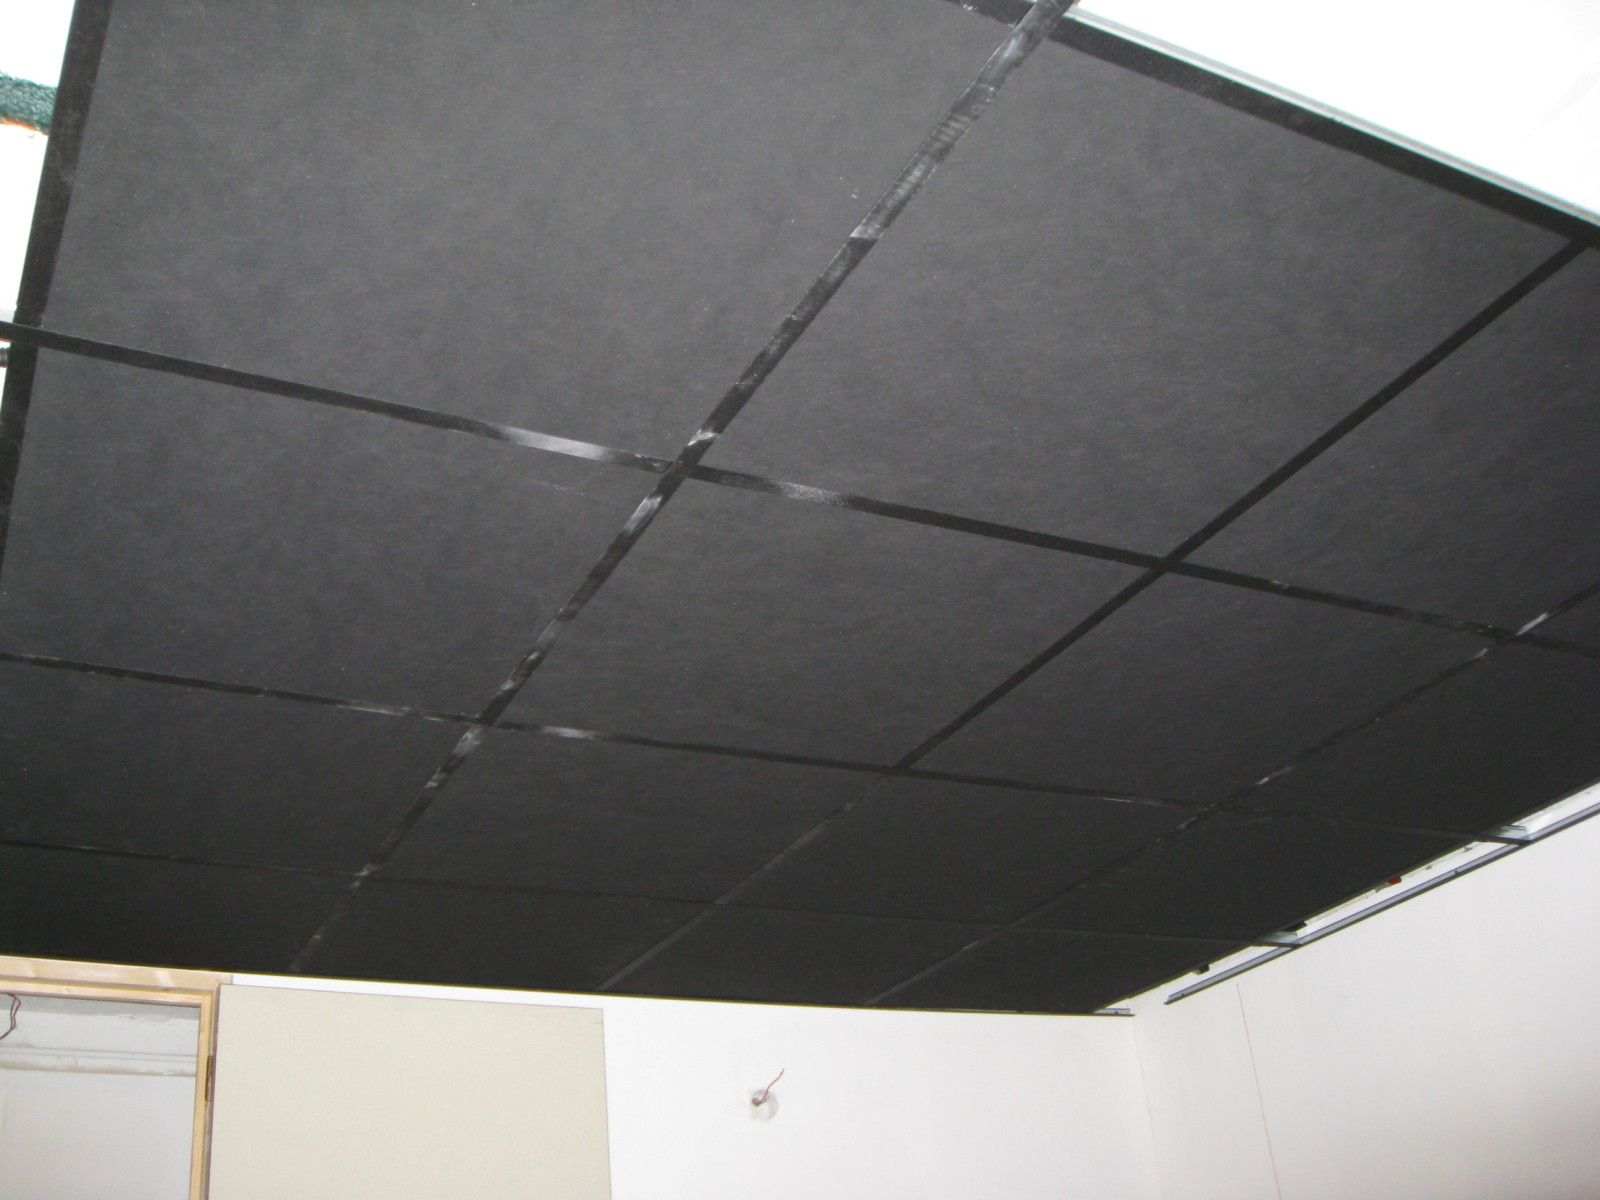 Plafond et difficult s associ es a la conqu te d 39 un r ve for Plafond dalle suspendu